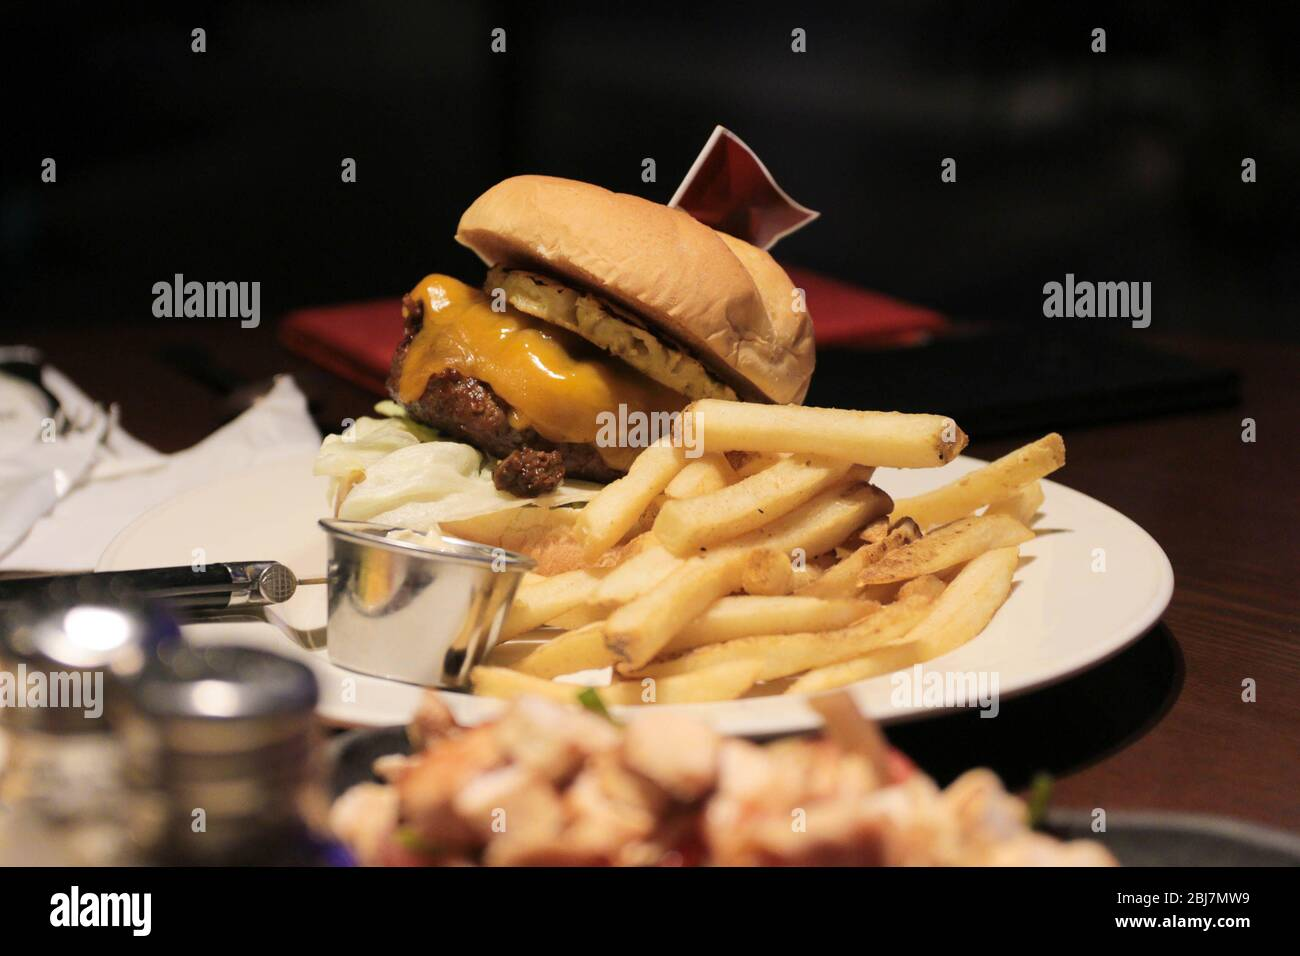 Classic burger with french fries and flag on top. Stock Photo